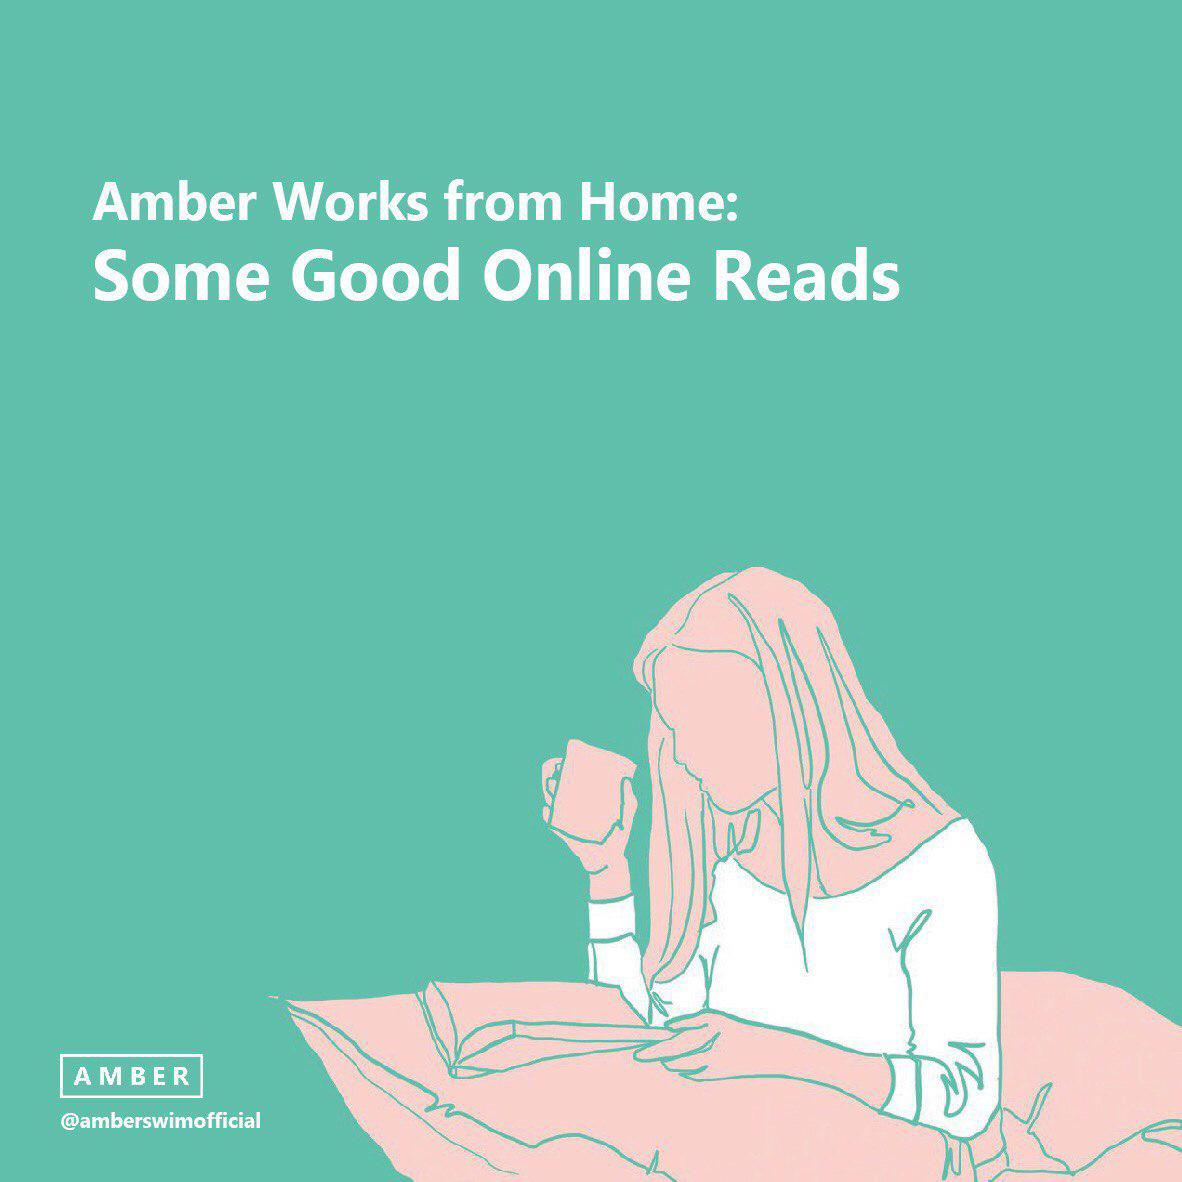 Amber Works from Home: Some Good Online Reads